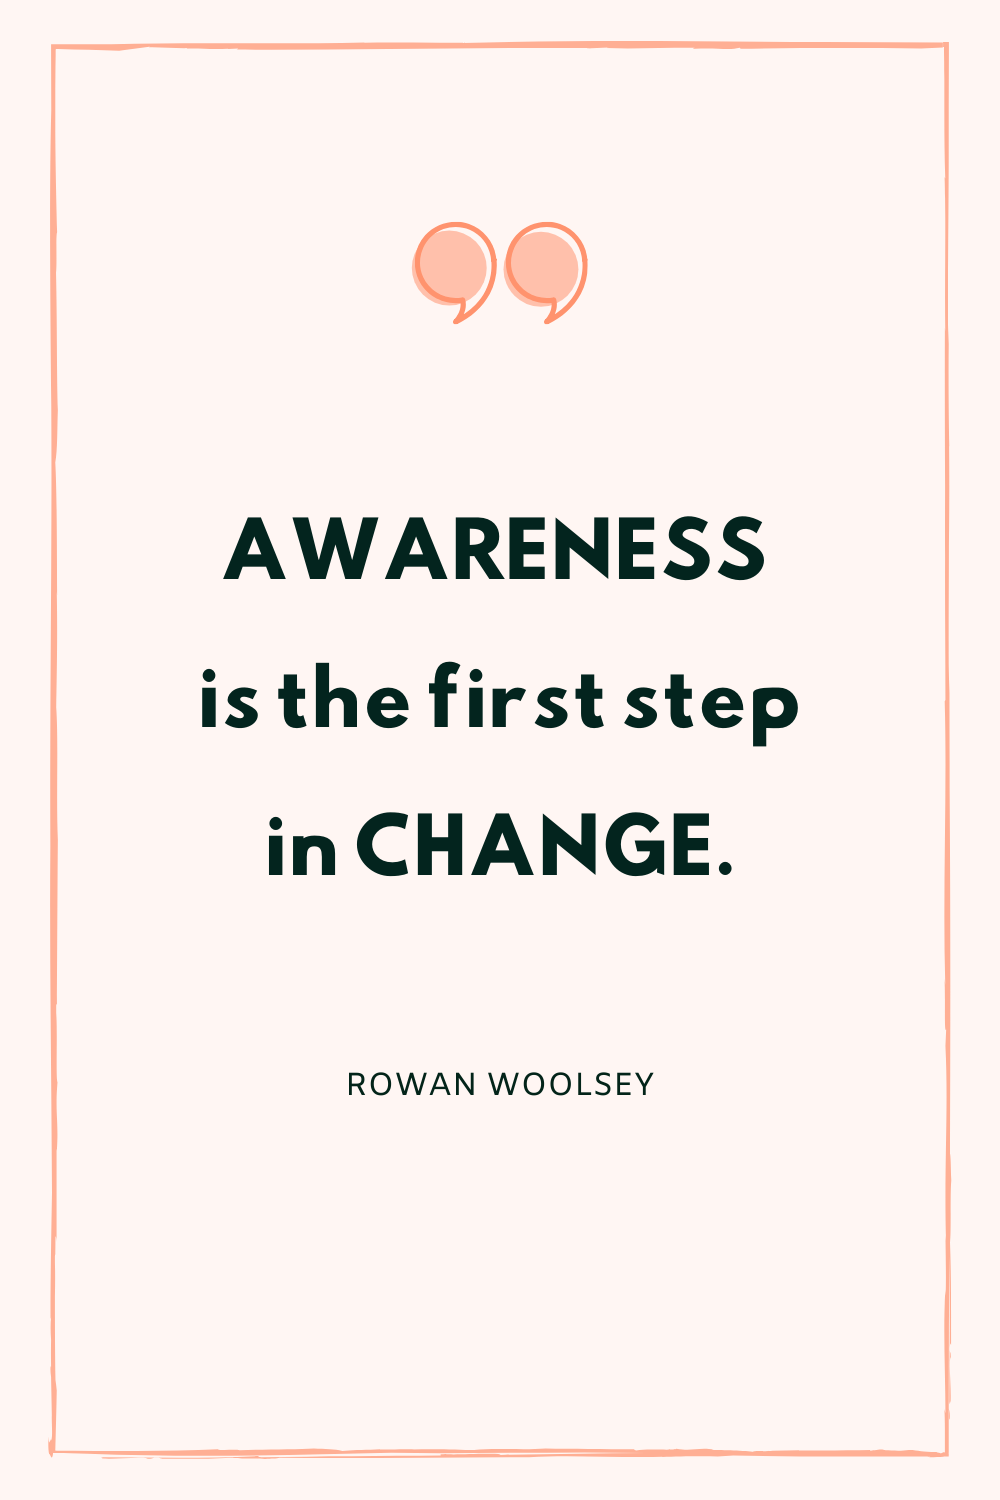 Awareness is the first step in change.